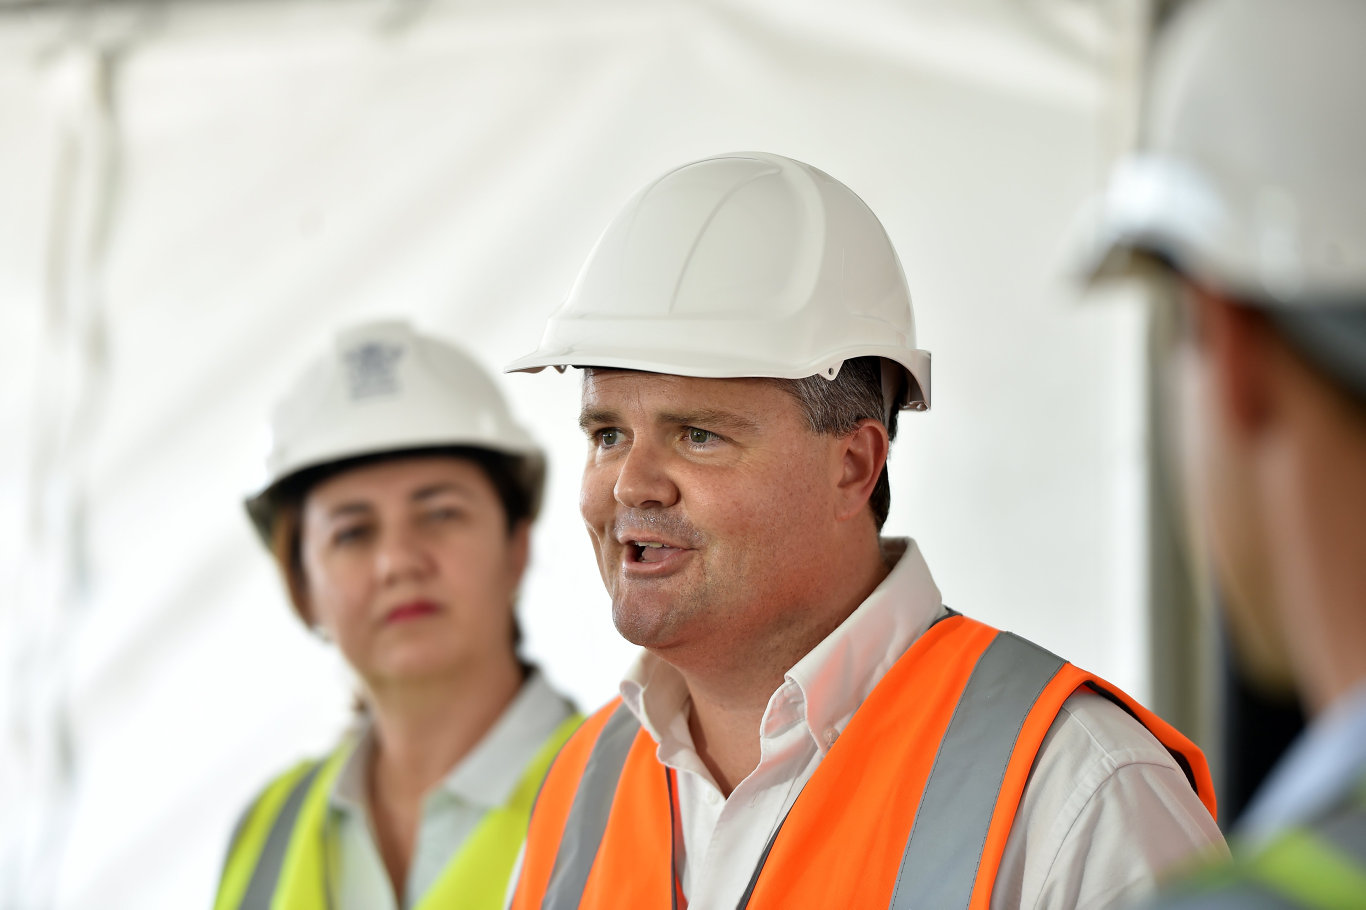 Premier Annastacia Palaszczuk and Member for Fairfax Ted O'Brien went head to head over funding at yesterday's Bruce Highway upgrade inspection.